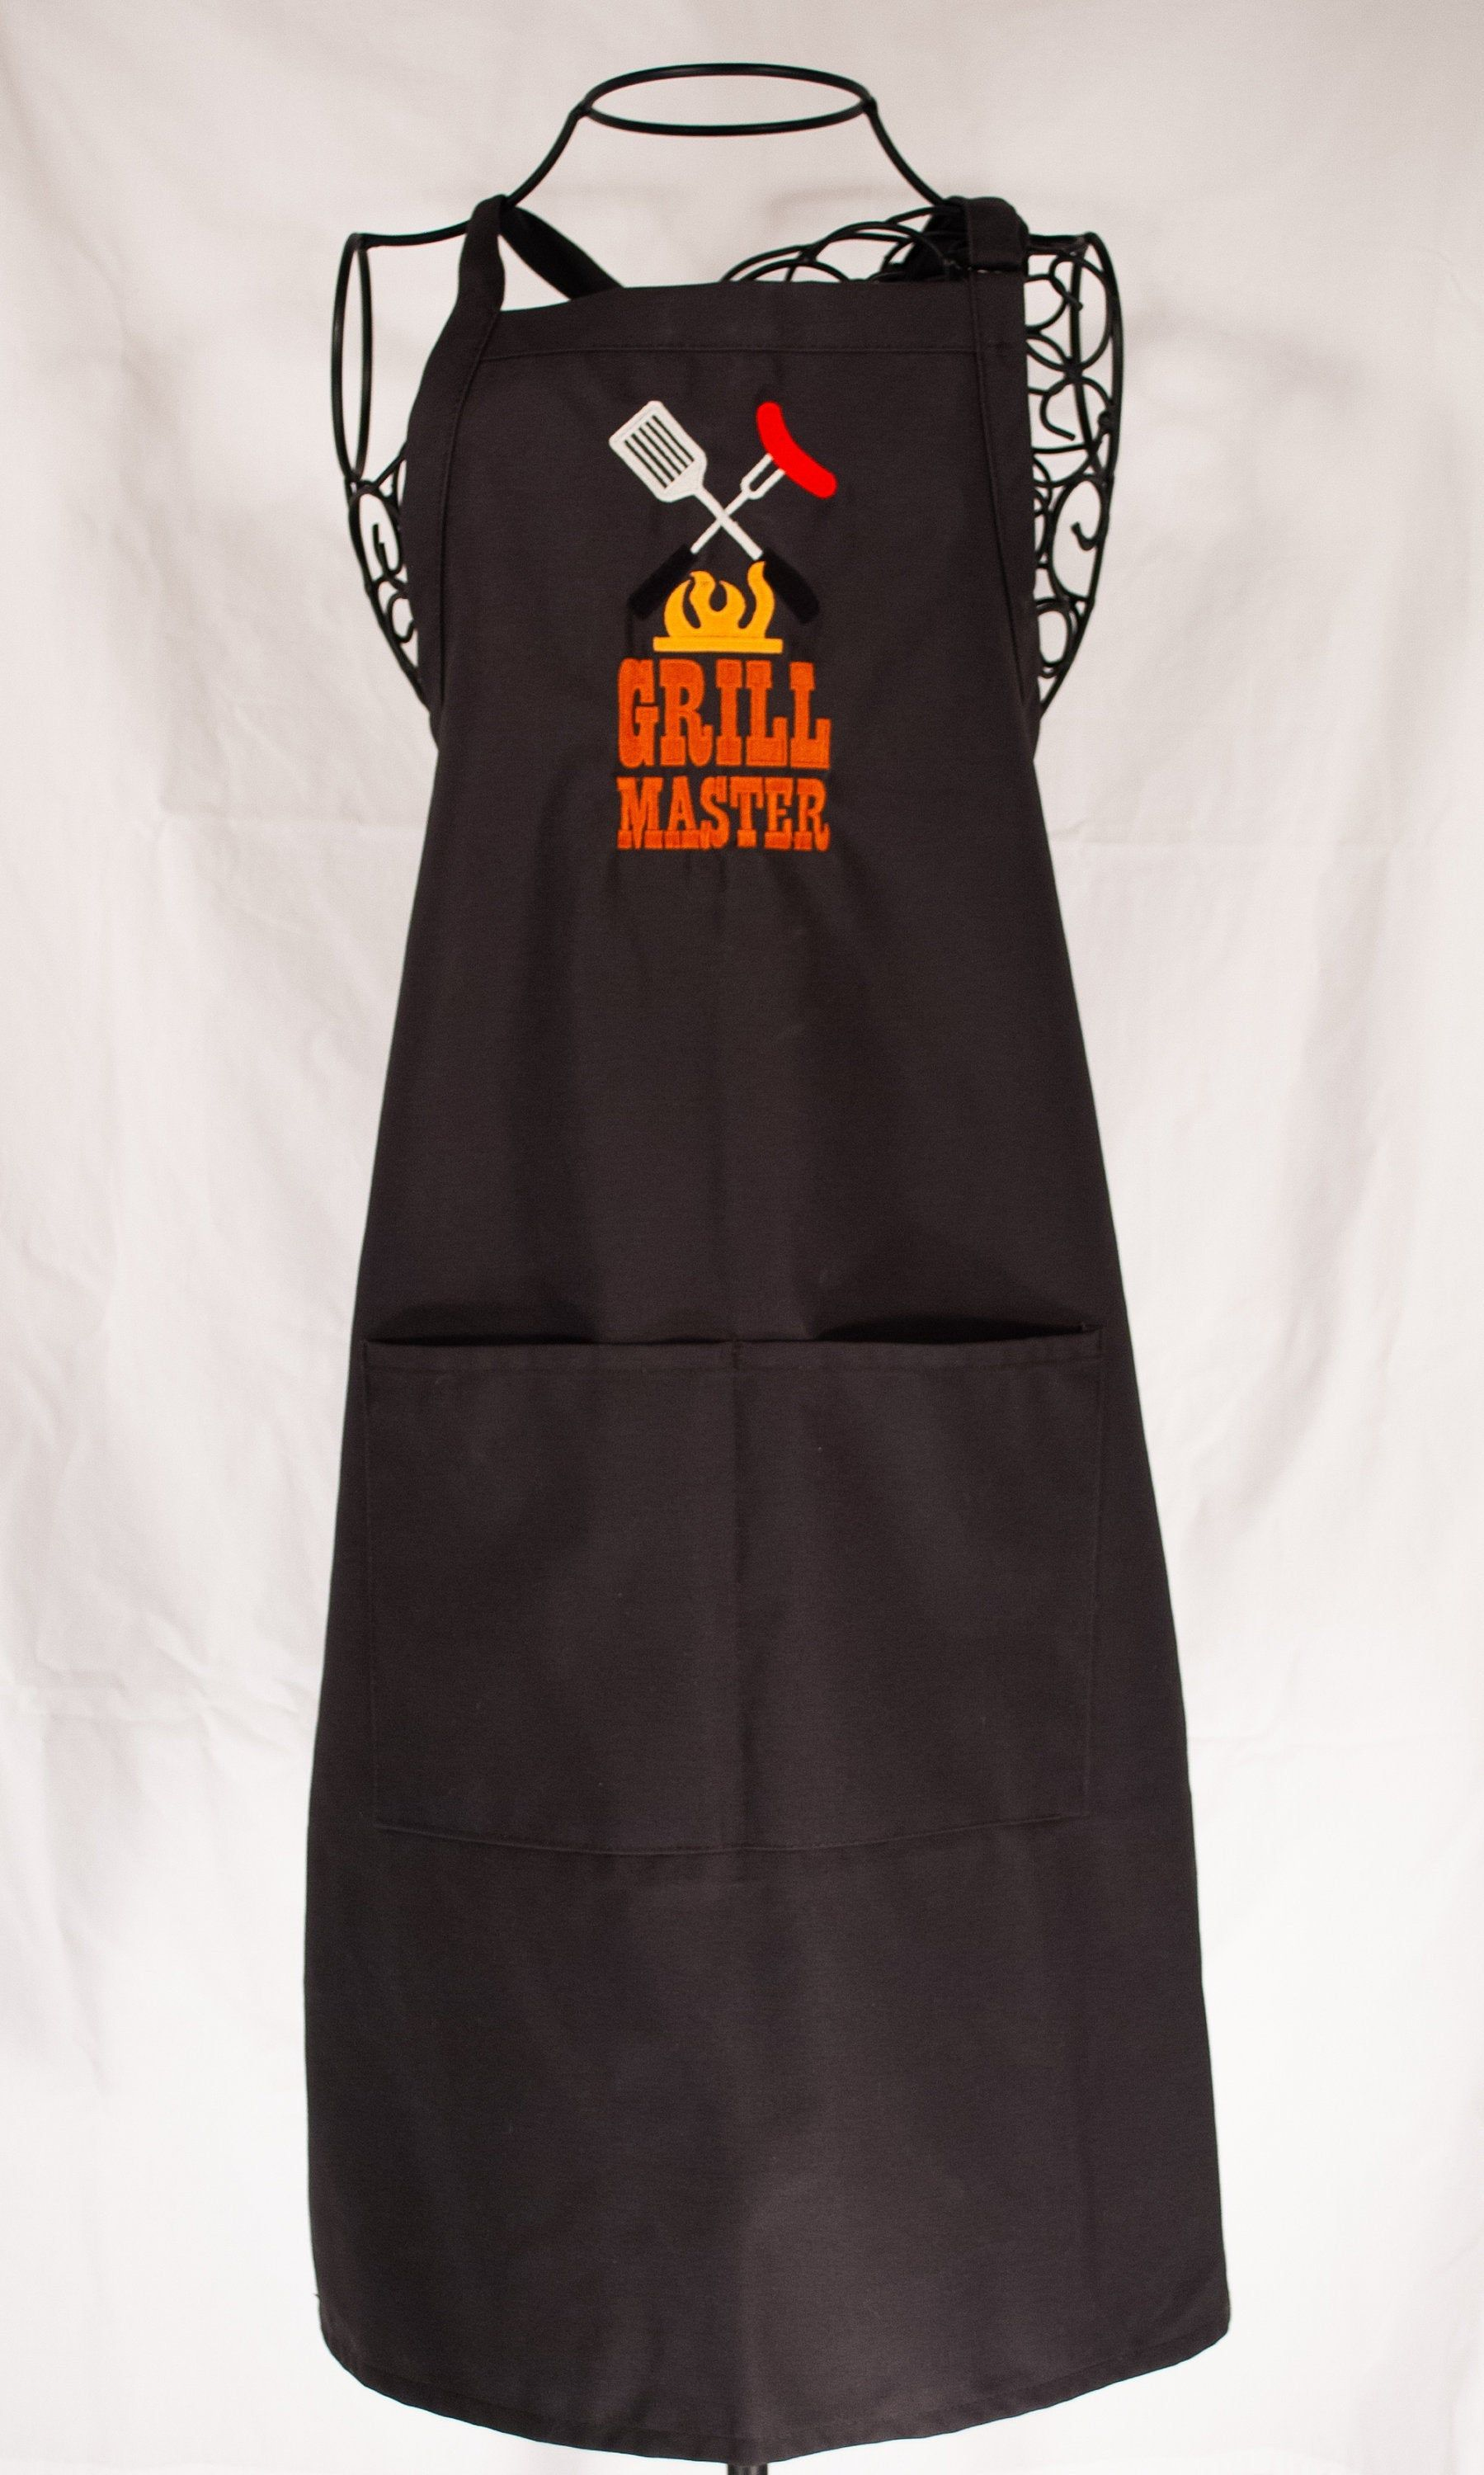 Funny Apron Custom Chef Apron Gift for Dad Mom Mothers Day